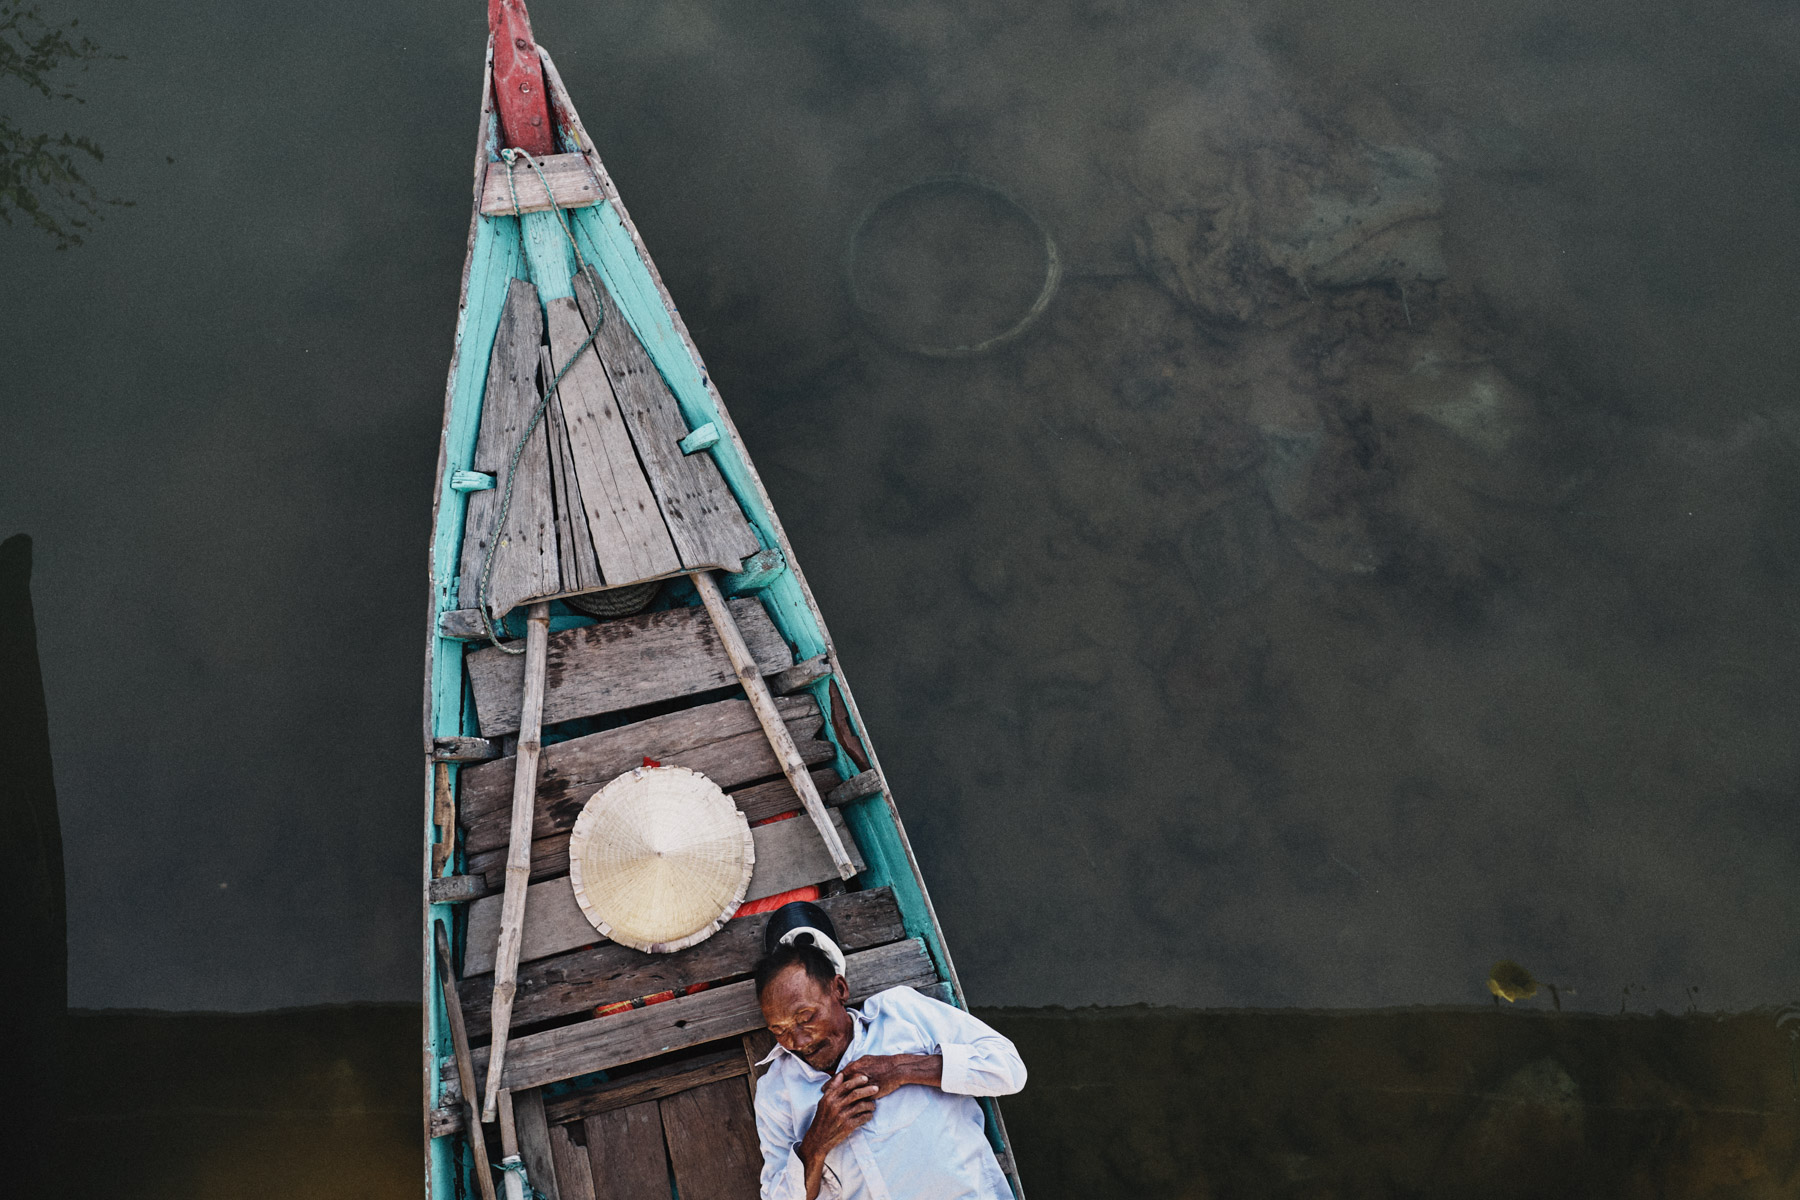 A fisherman takes an afternoon nap beneath a bridge on the Thu Bon river in Hoi An, Vietnam.